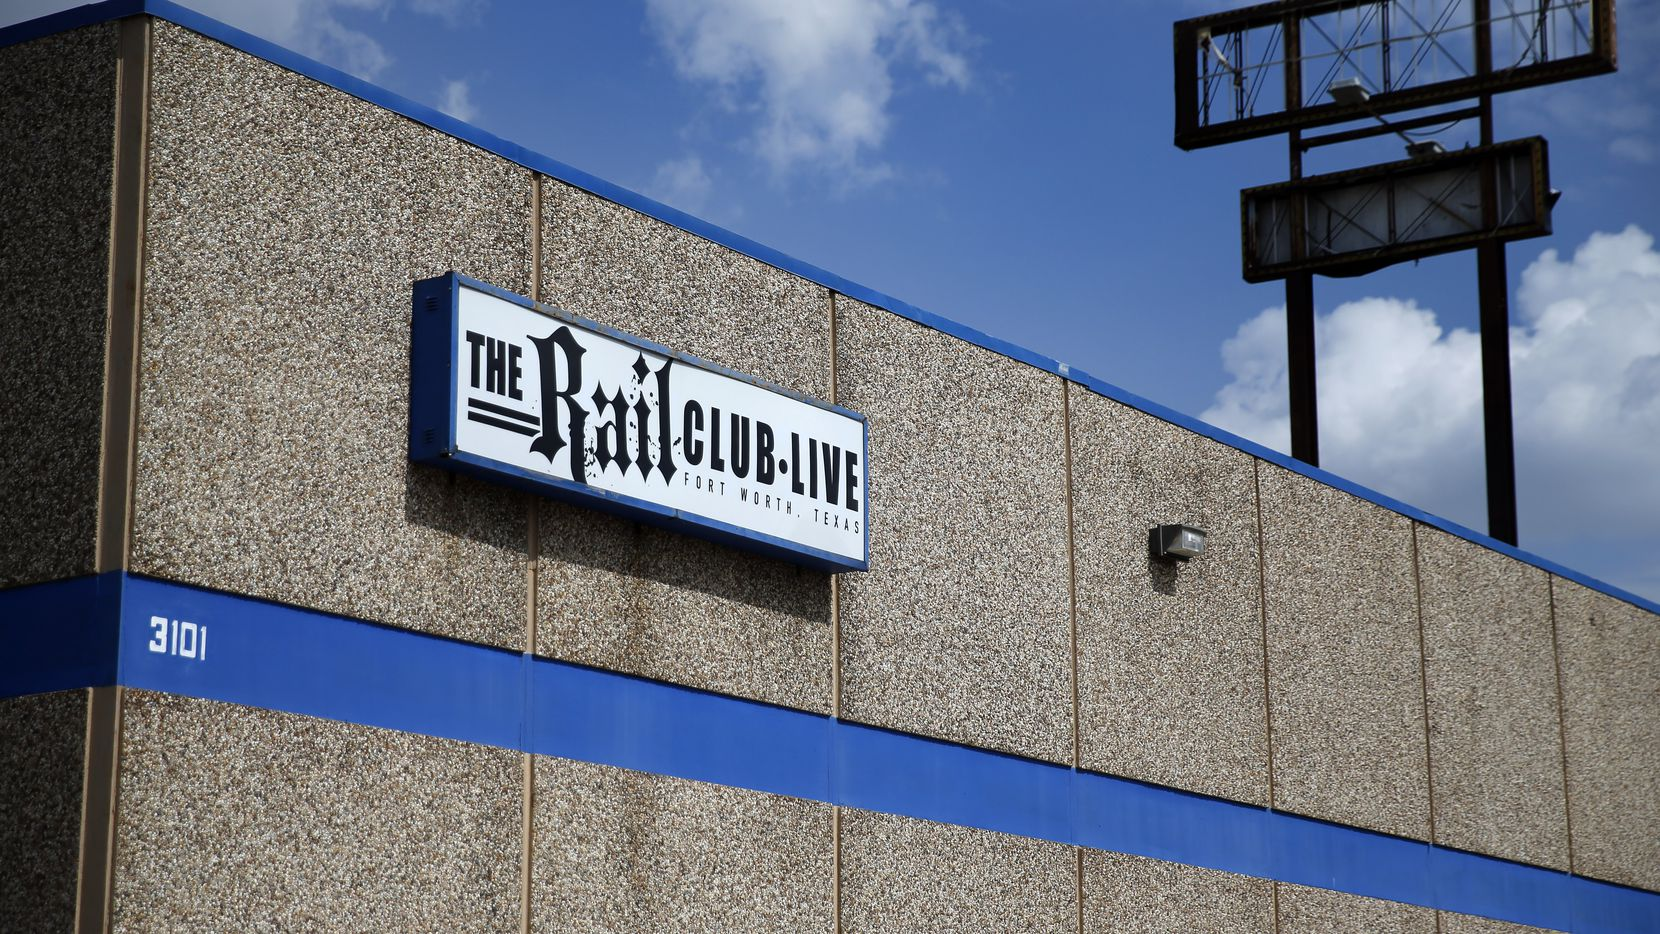 The Rail Club Live is a bar and metal music venue in Fort Worth.